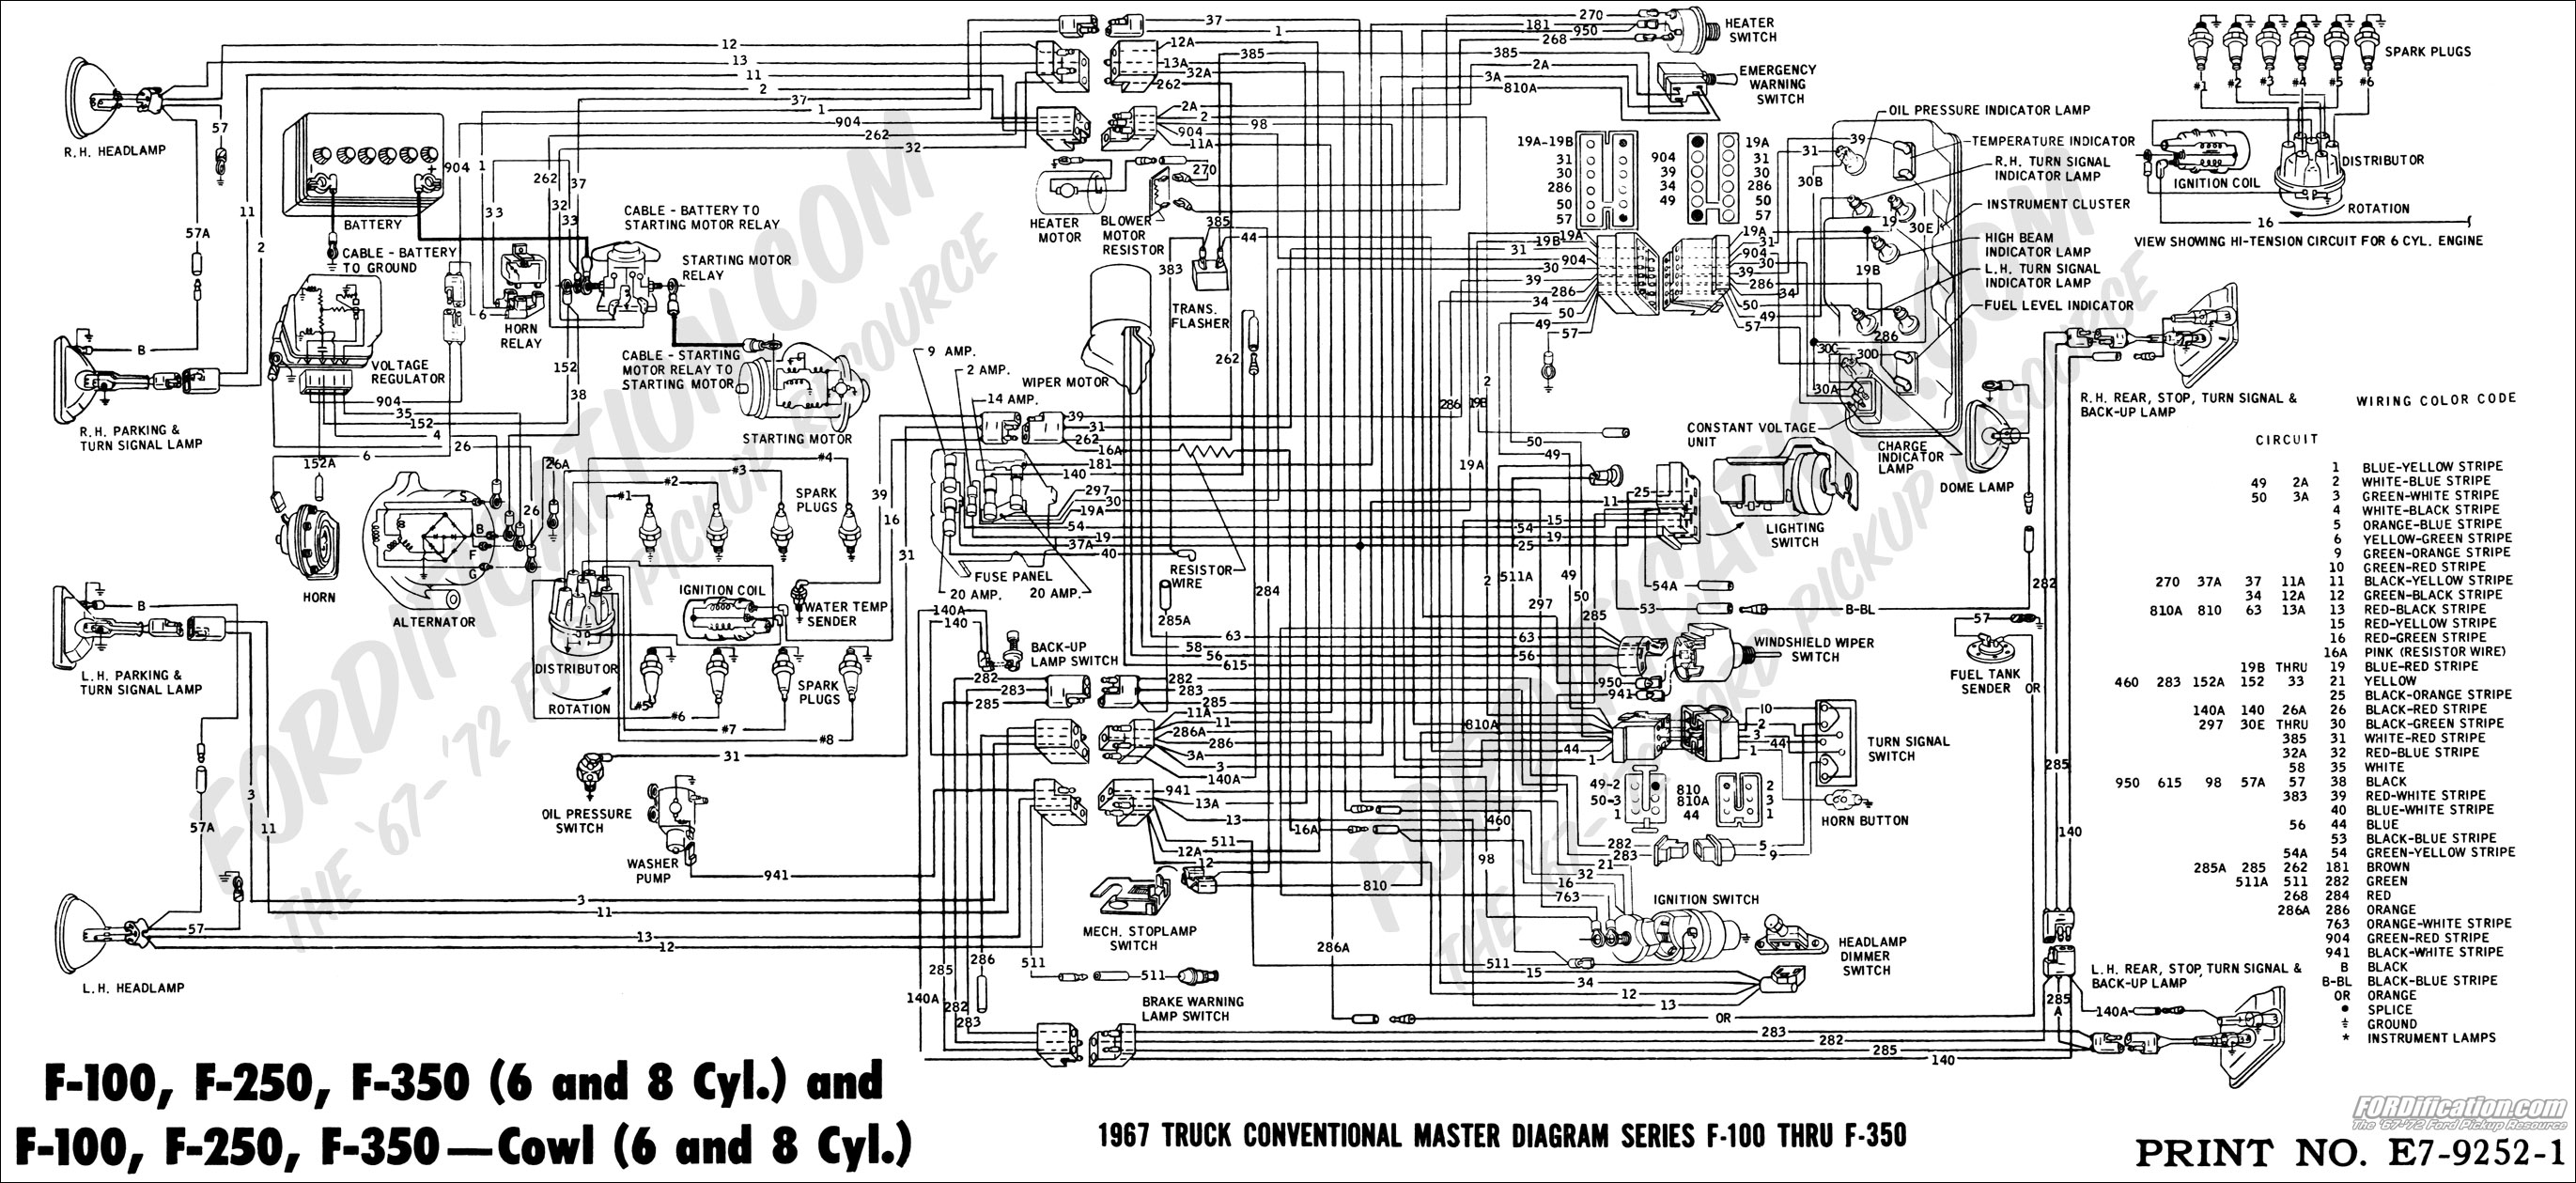 old ford diesel wiring diagram wiring diagram rh 77 raepoppweiss de